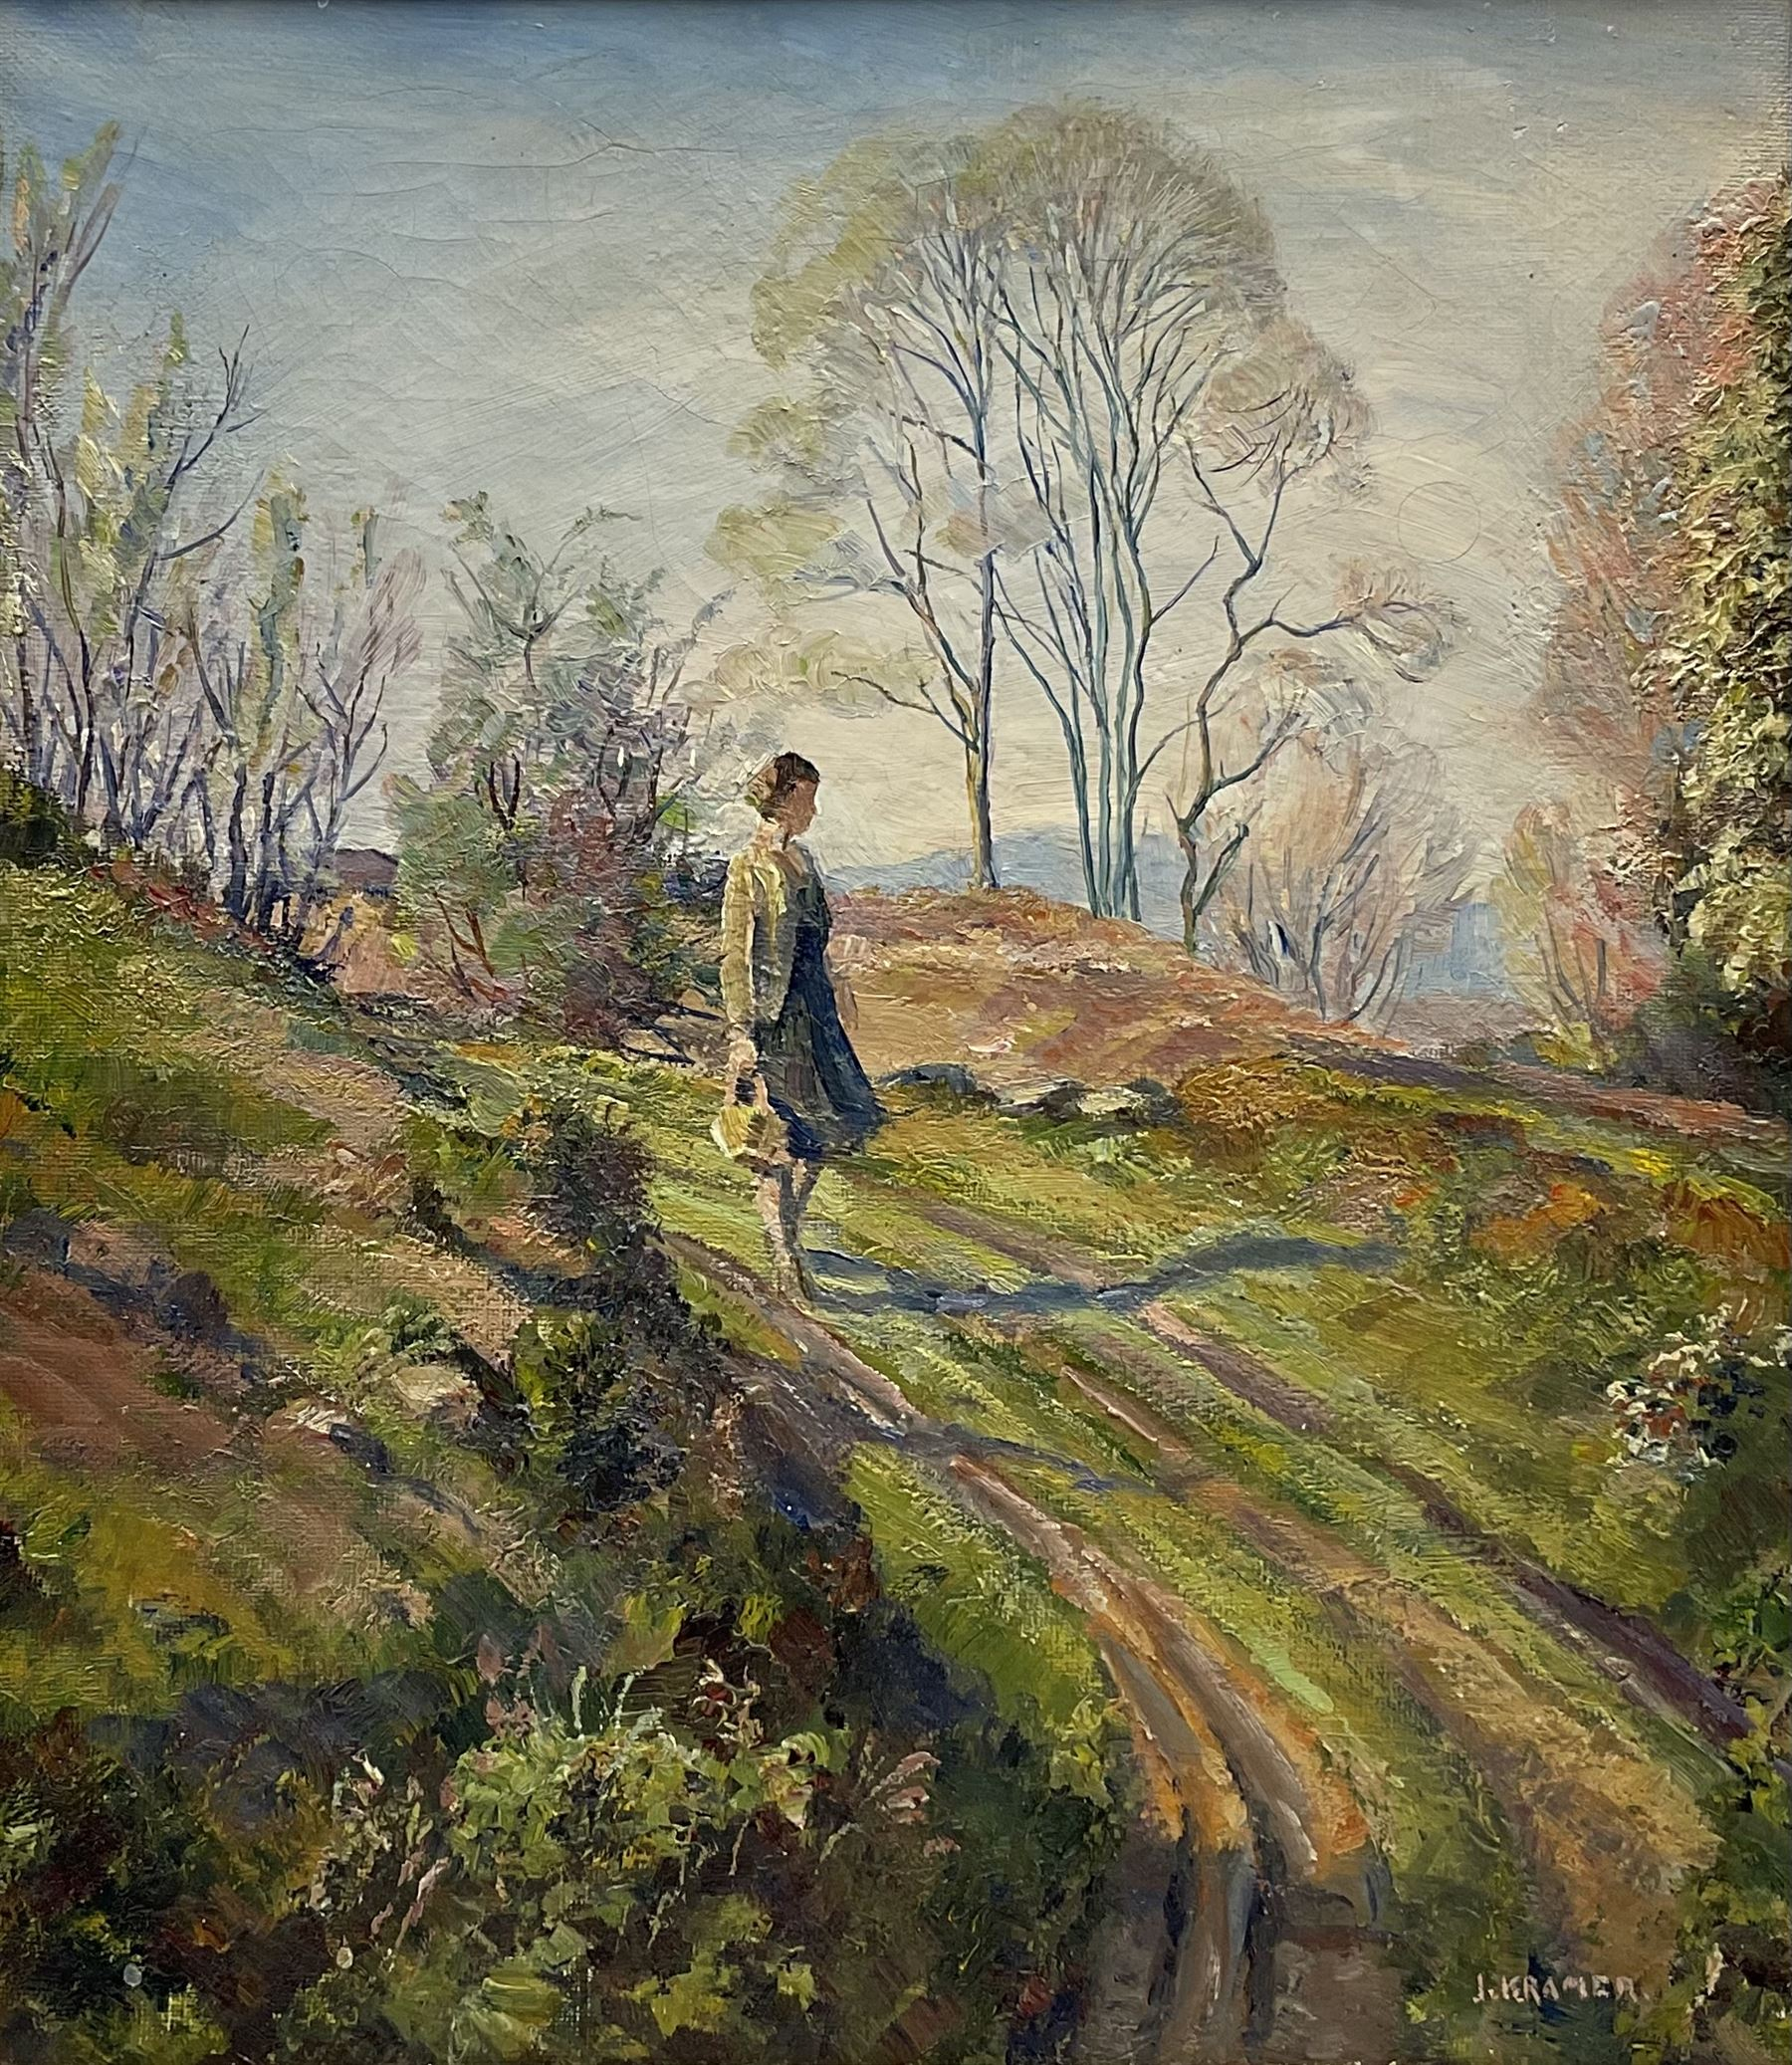 Jacob Kramer (British 1892-1962): Young Woman on a Country Path